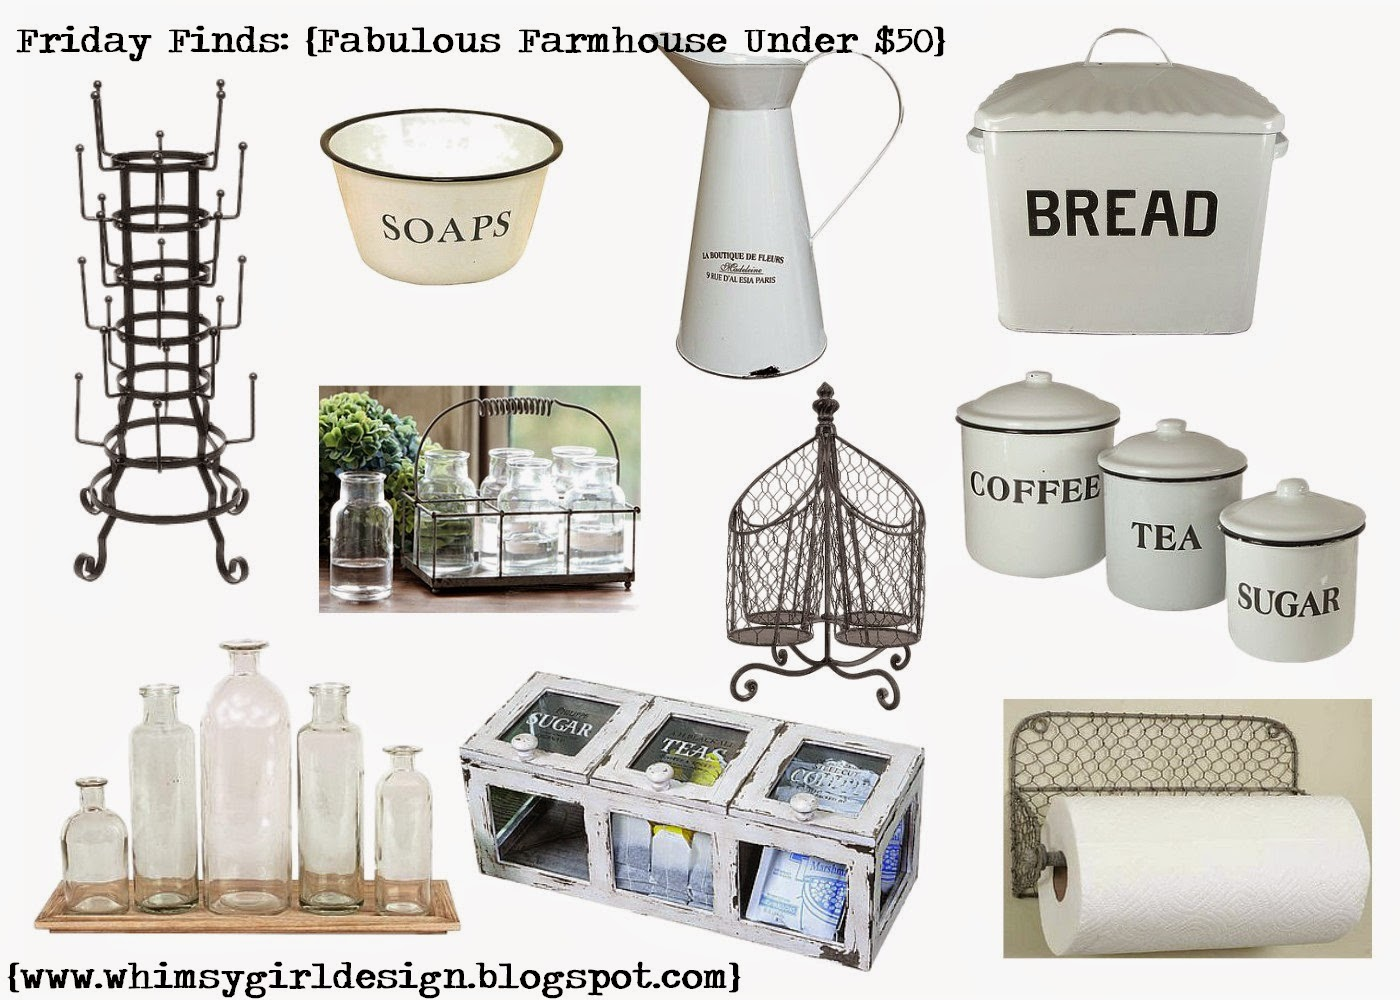 whimsy girl: Friday Finds: {Fabulous Farmhouse Under $50}